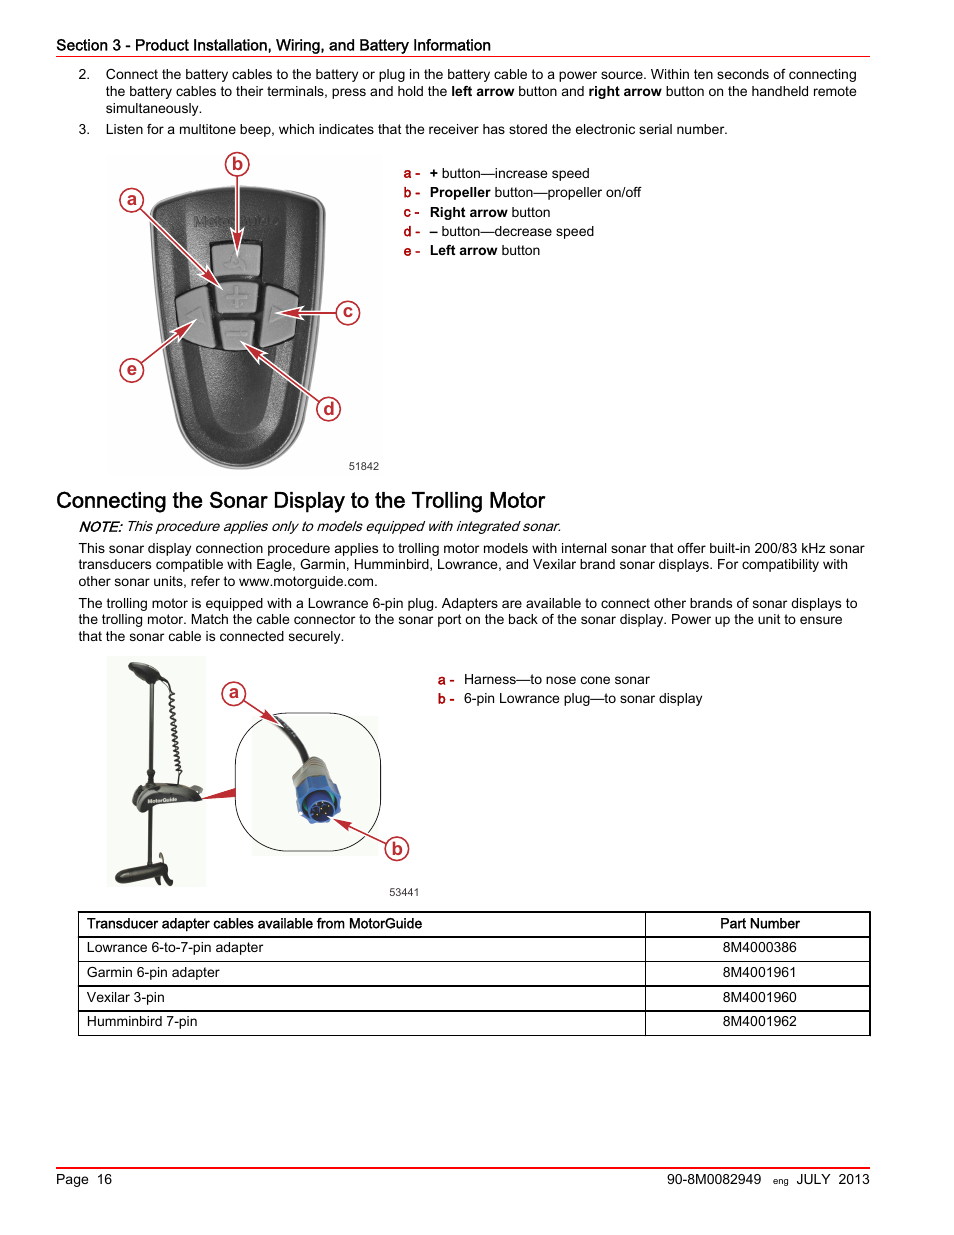 Connecting the sonar display to the trolling motor, Ba c d e | MotorGuide  Xi5 Wireless Trolling Motor User Manual | Page 20 / 38